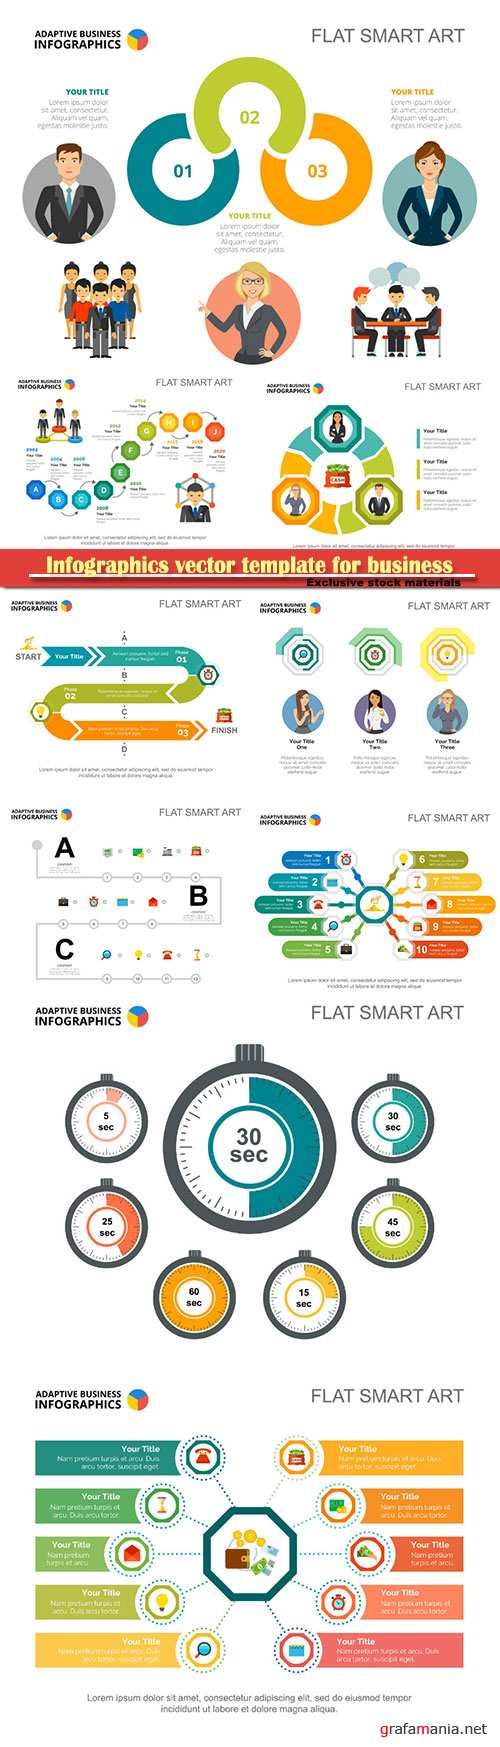 Infographics vector template for business presentations or information banner # 32